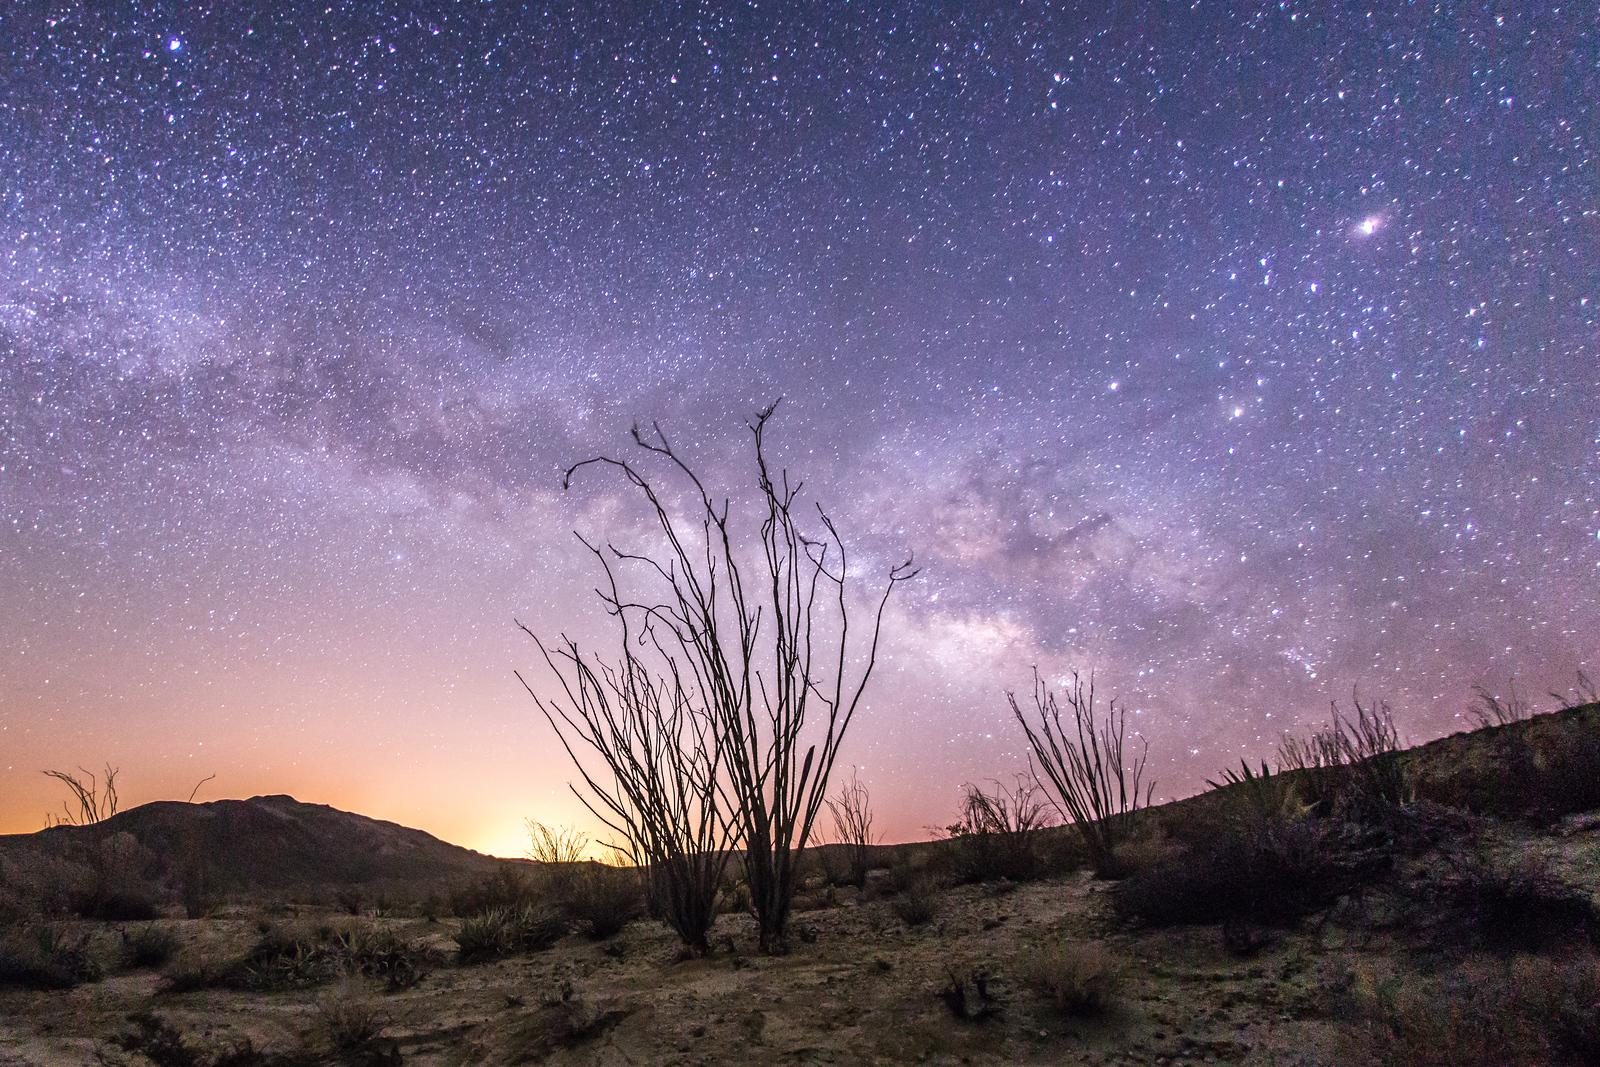 Milky Way and some ocotillo